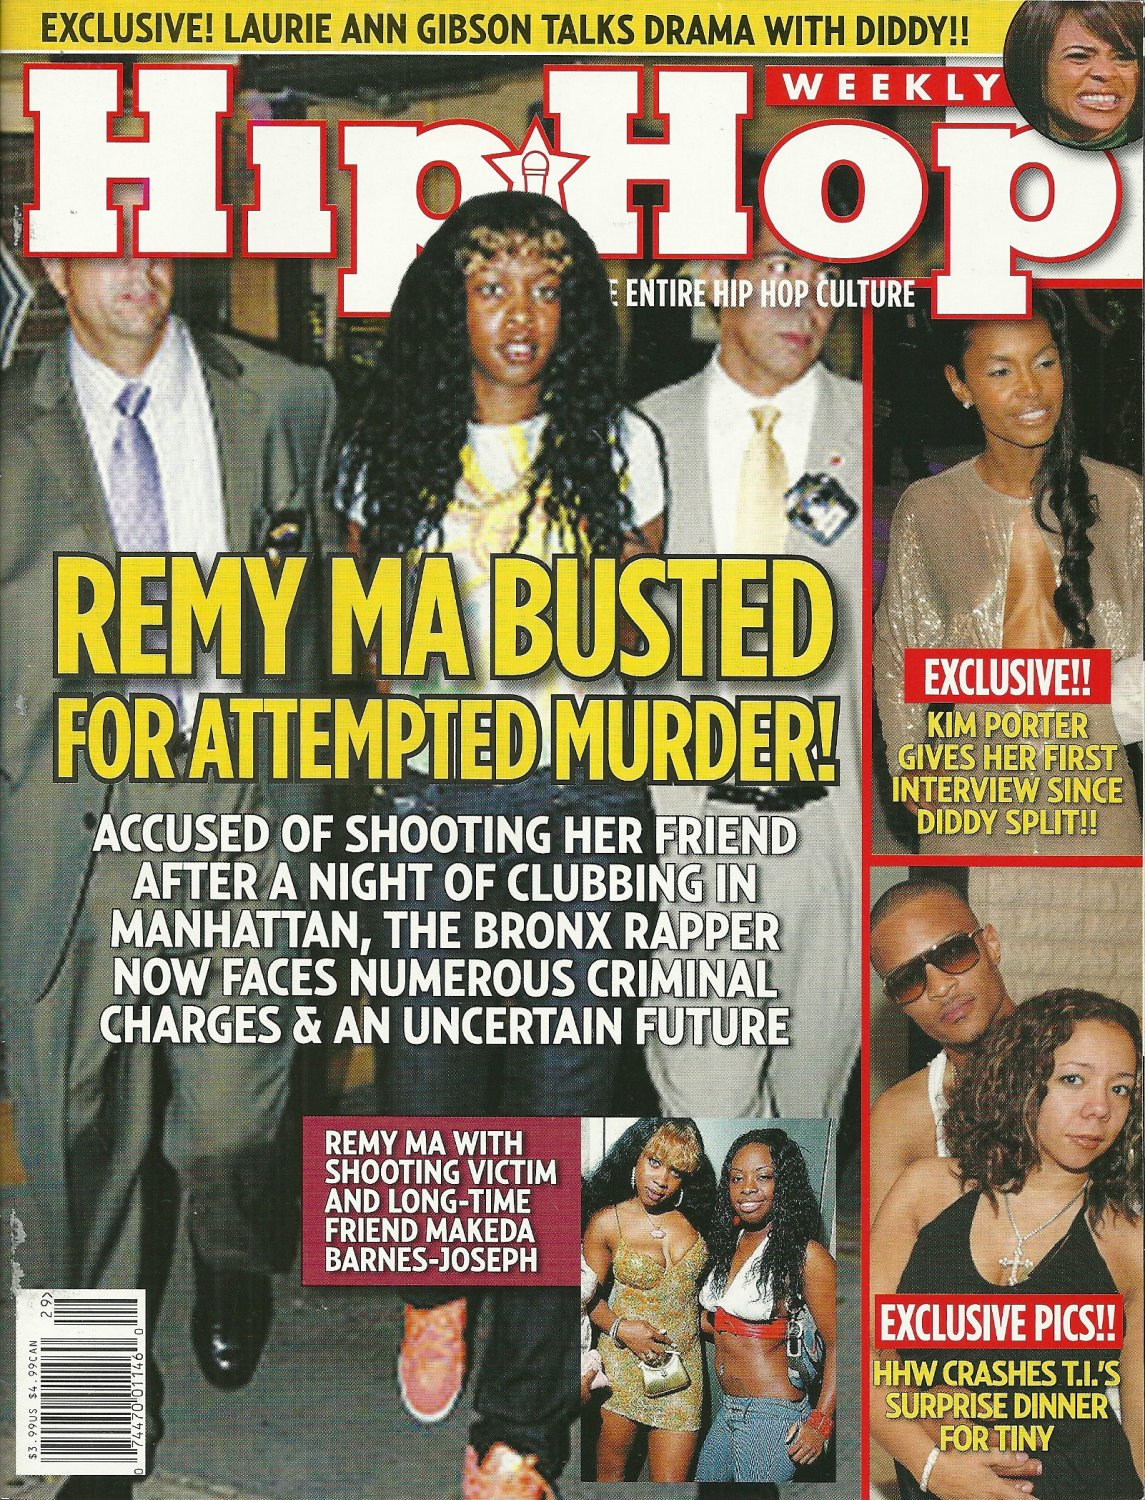 HIP HOP WEEKLY Vol. 2 #15 REMY MA BUSTED Laurie Ann Gibson KIM PORTER